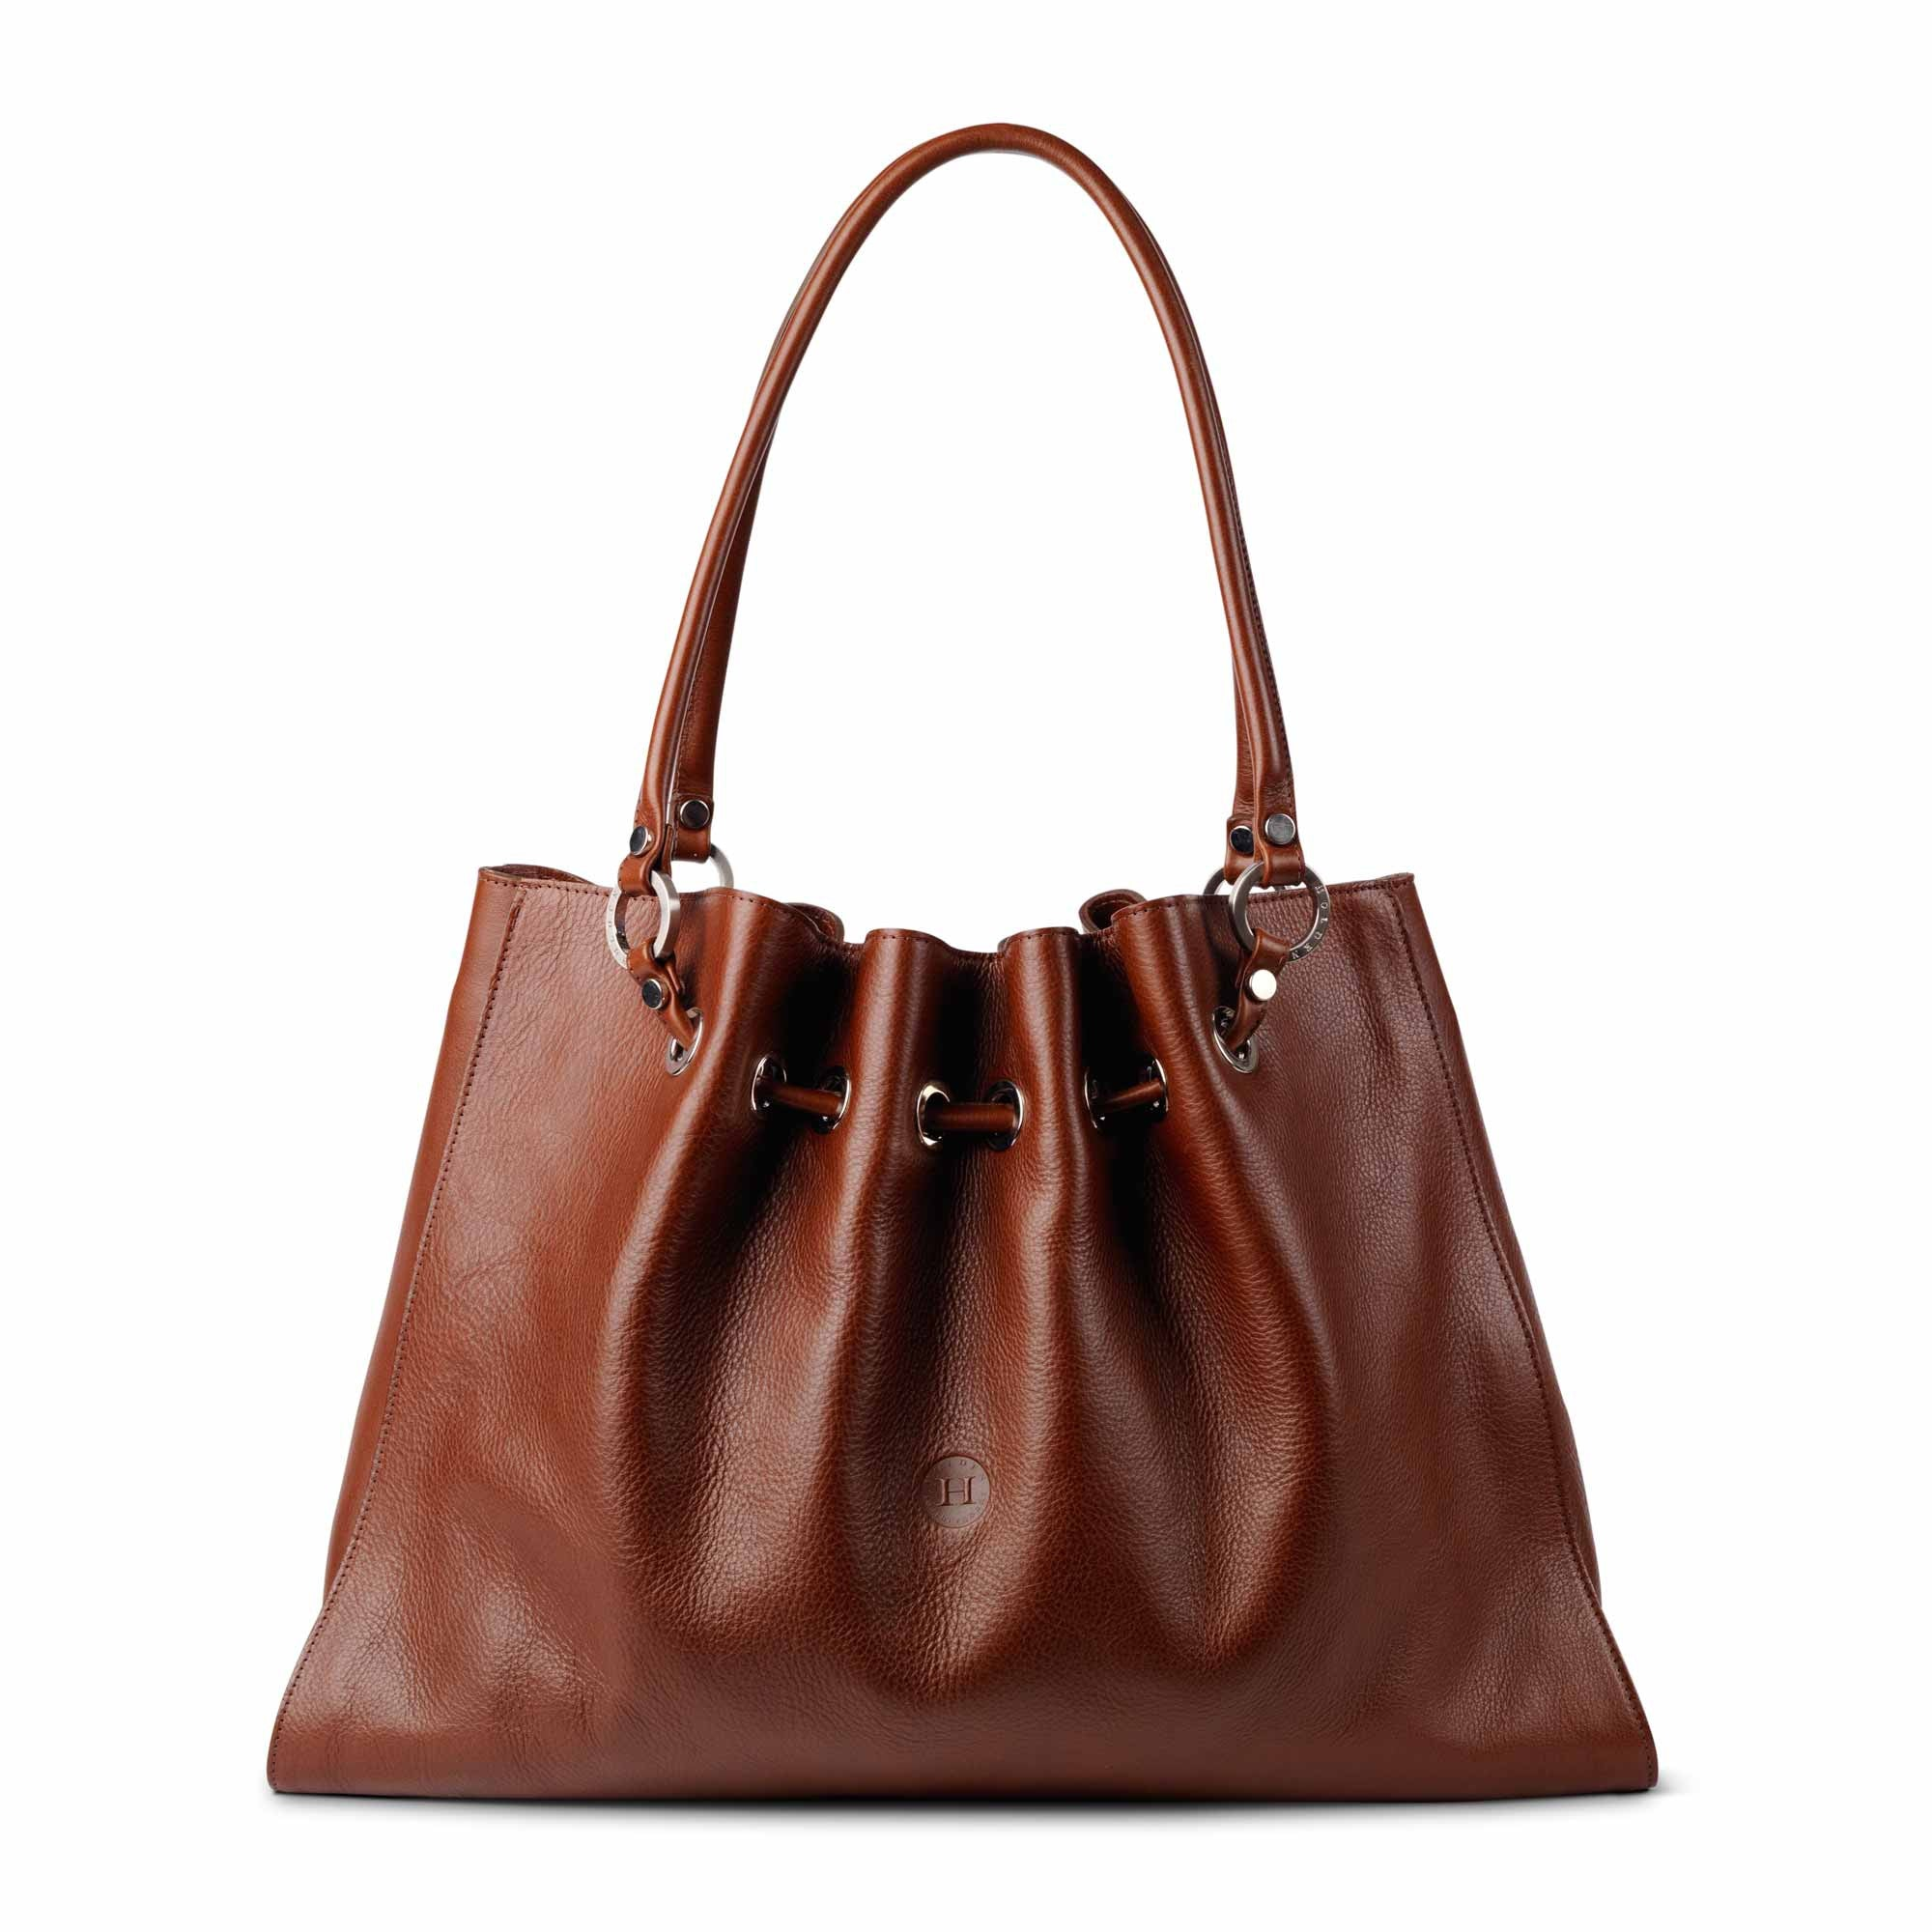 Siobhan Large Leather Tote Chestnut - Holden Leathergoods, leather bags handmade in Ireland